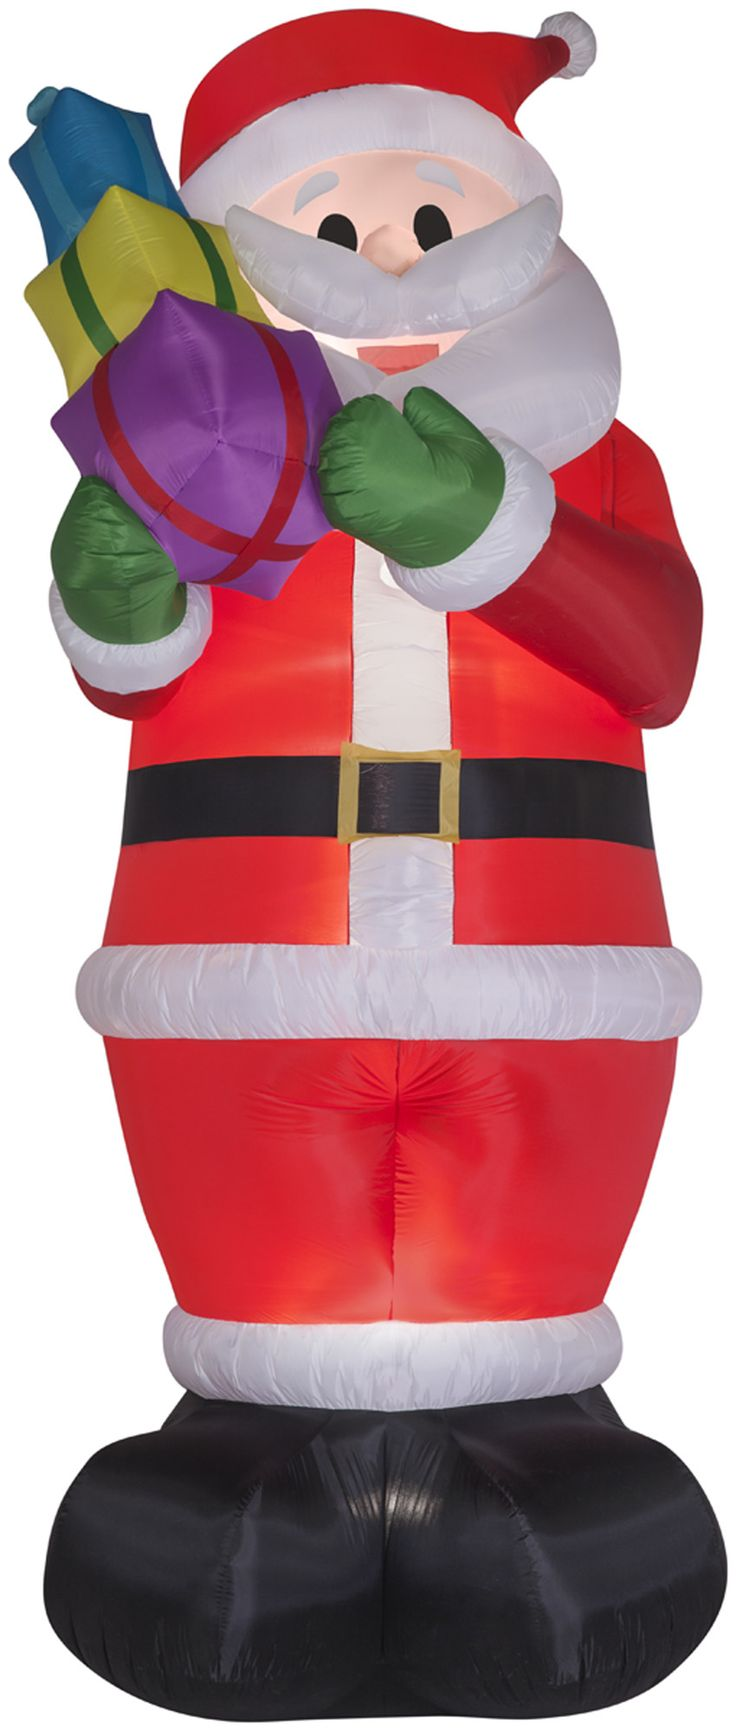 Gemmy inflatable airblown reindeer outdoor christmas decoration lowe - Airblown Inflatables Christmas Colossal Santa With Gifts Decoration